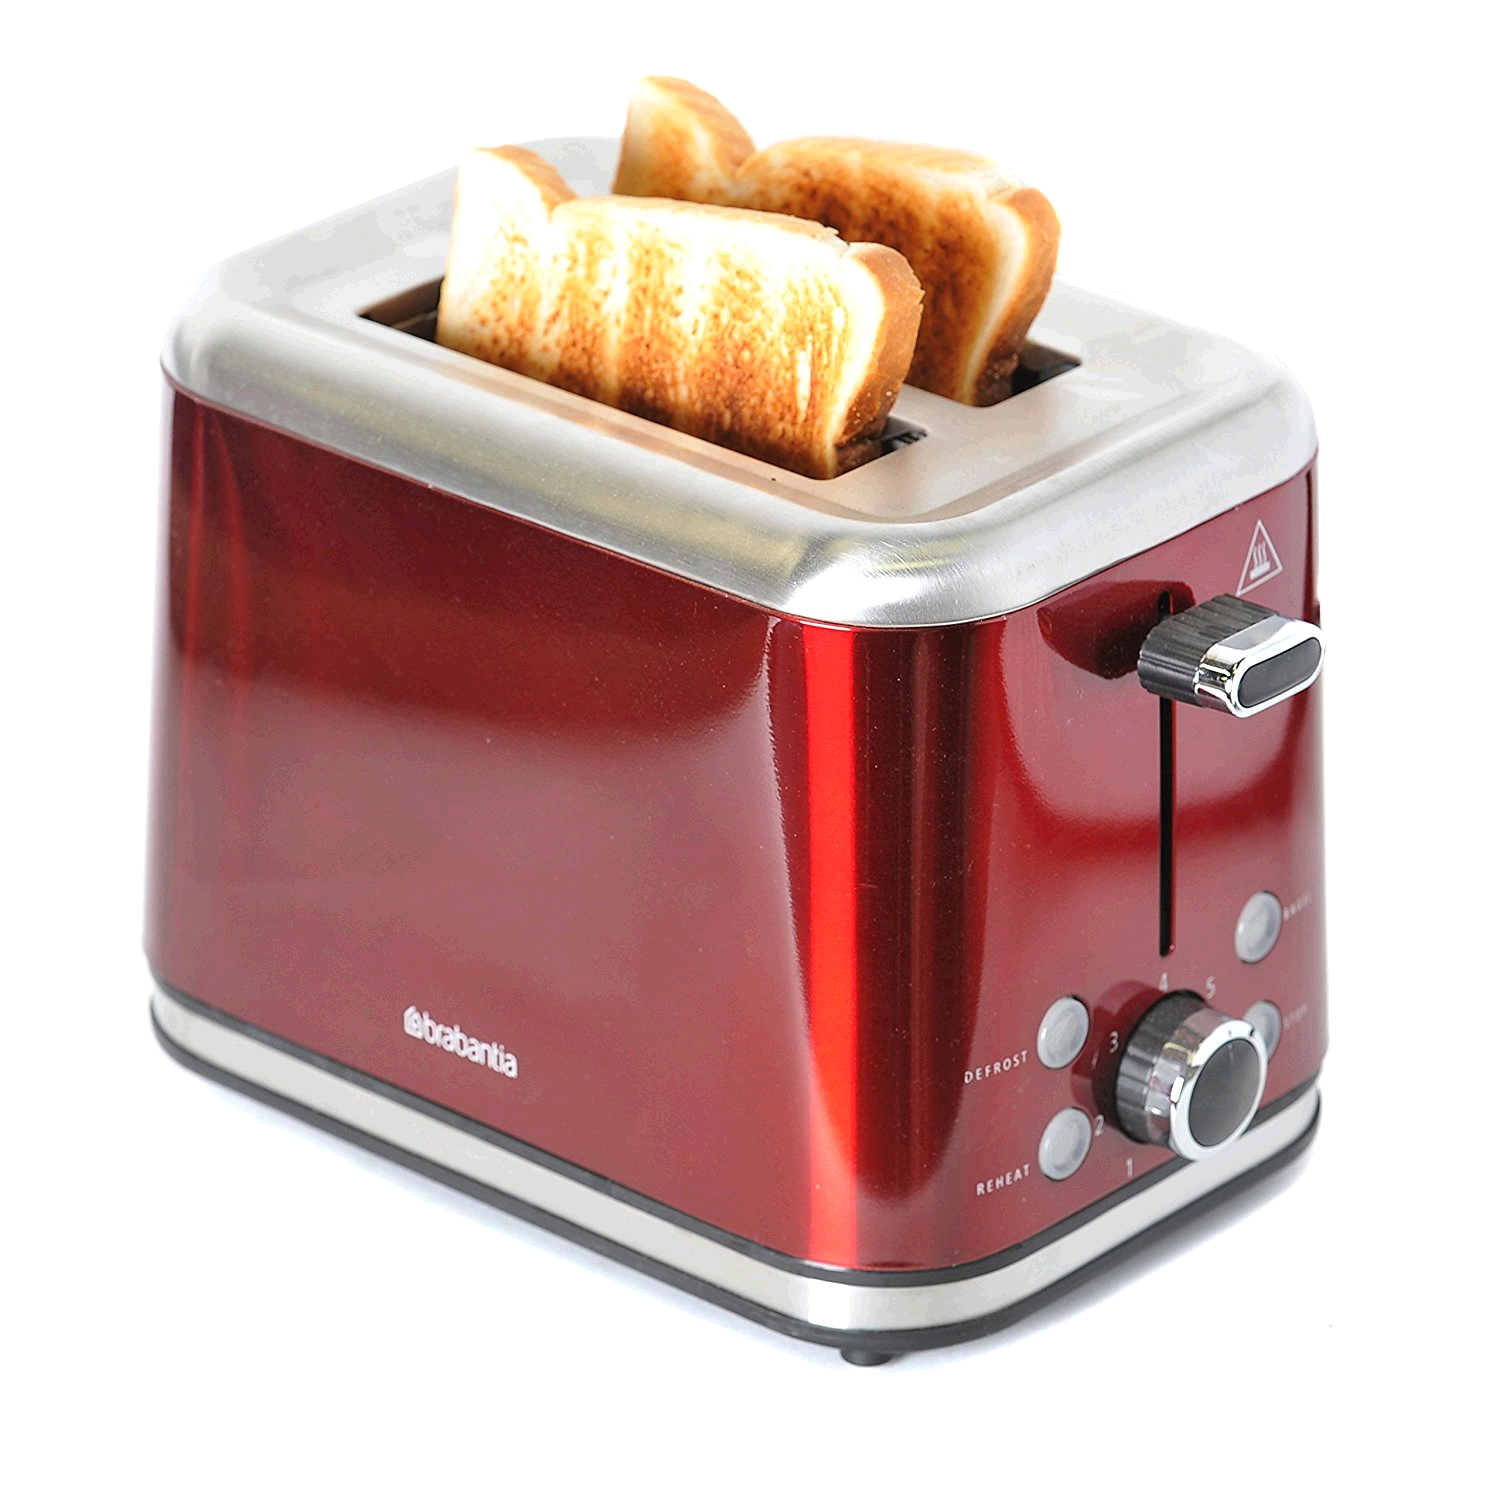 Brabantia 2-Slice Toaster Red/Brushed Stainless Steel